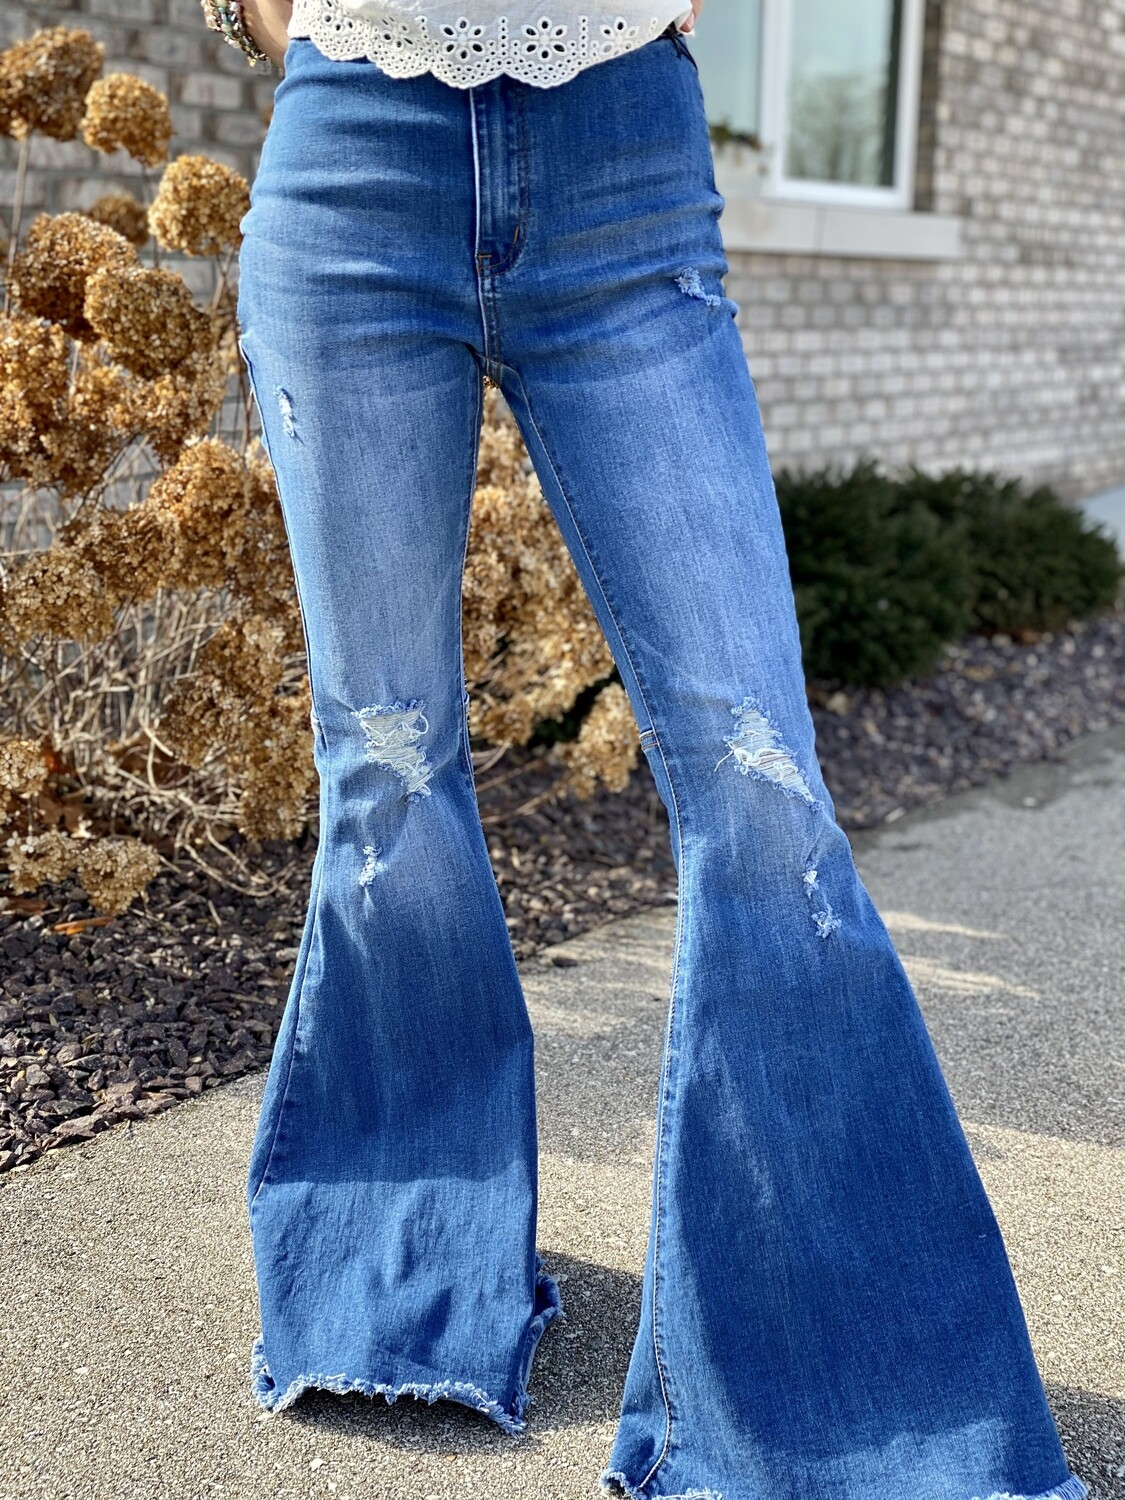 Medium Washed Light Distressed Flares